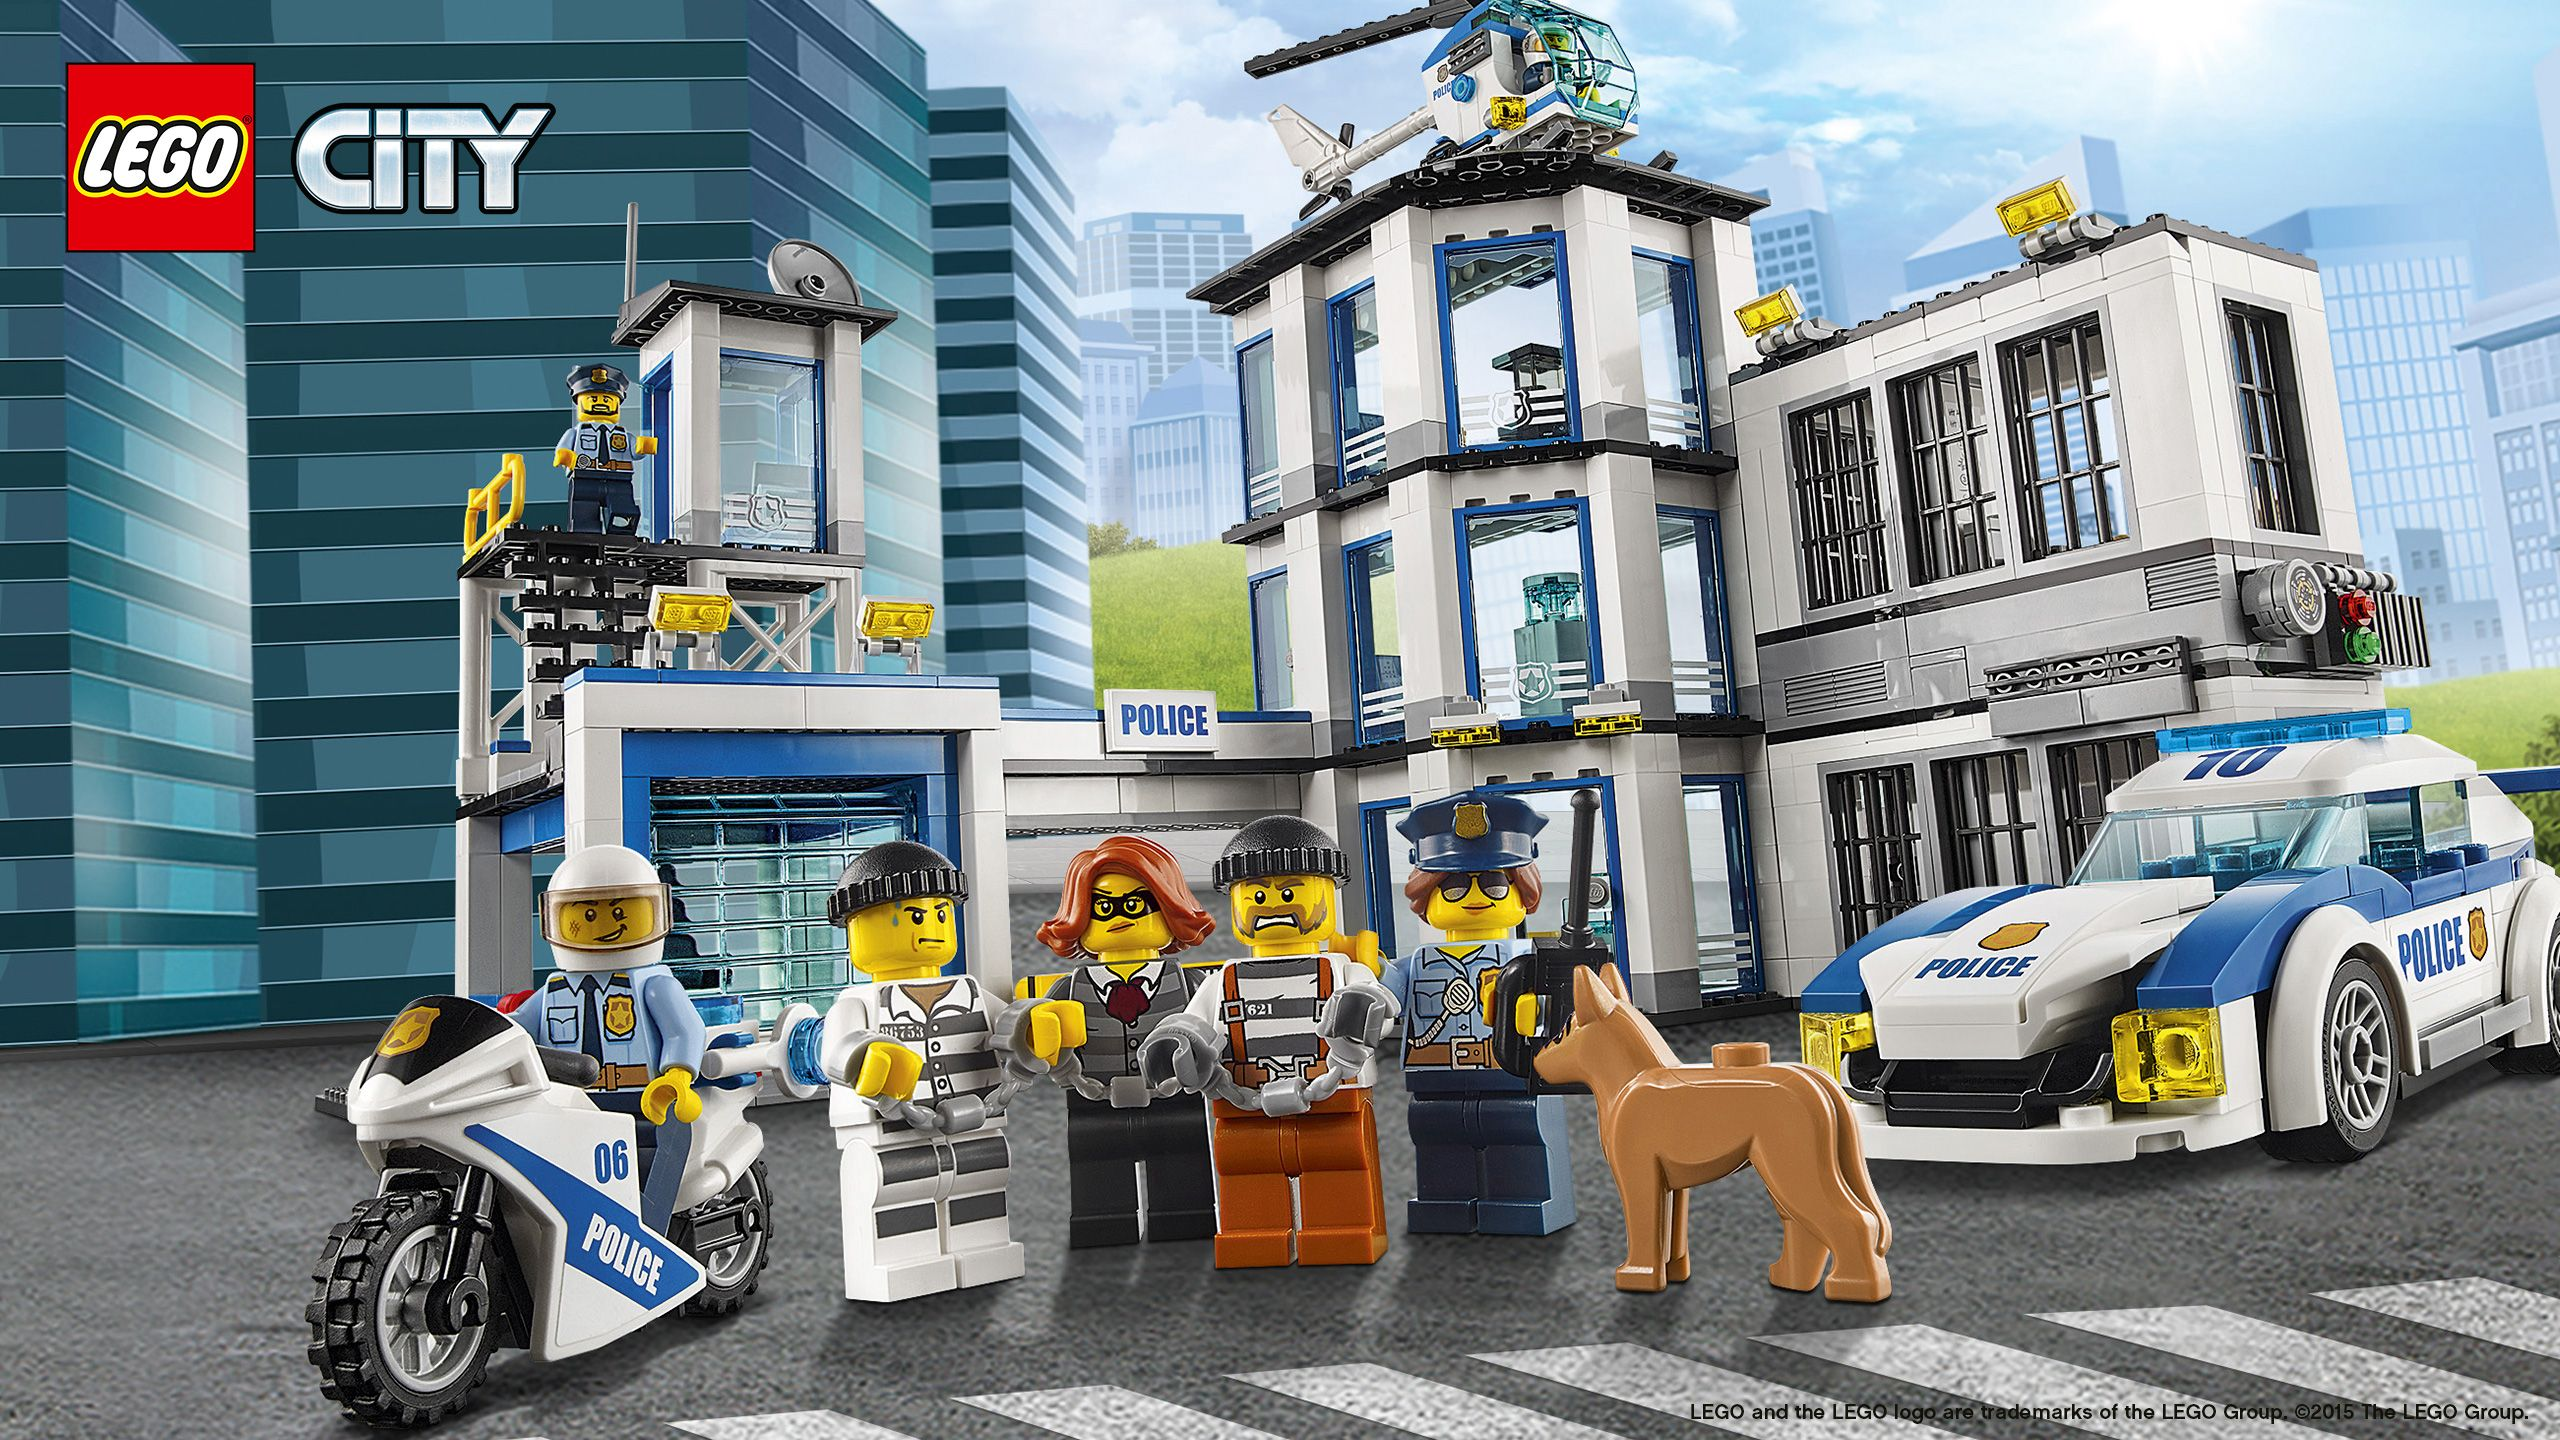 LEGO Police Wallpapers - Top Free LEGO Police Backgrounds - WallpaperAccess